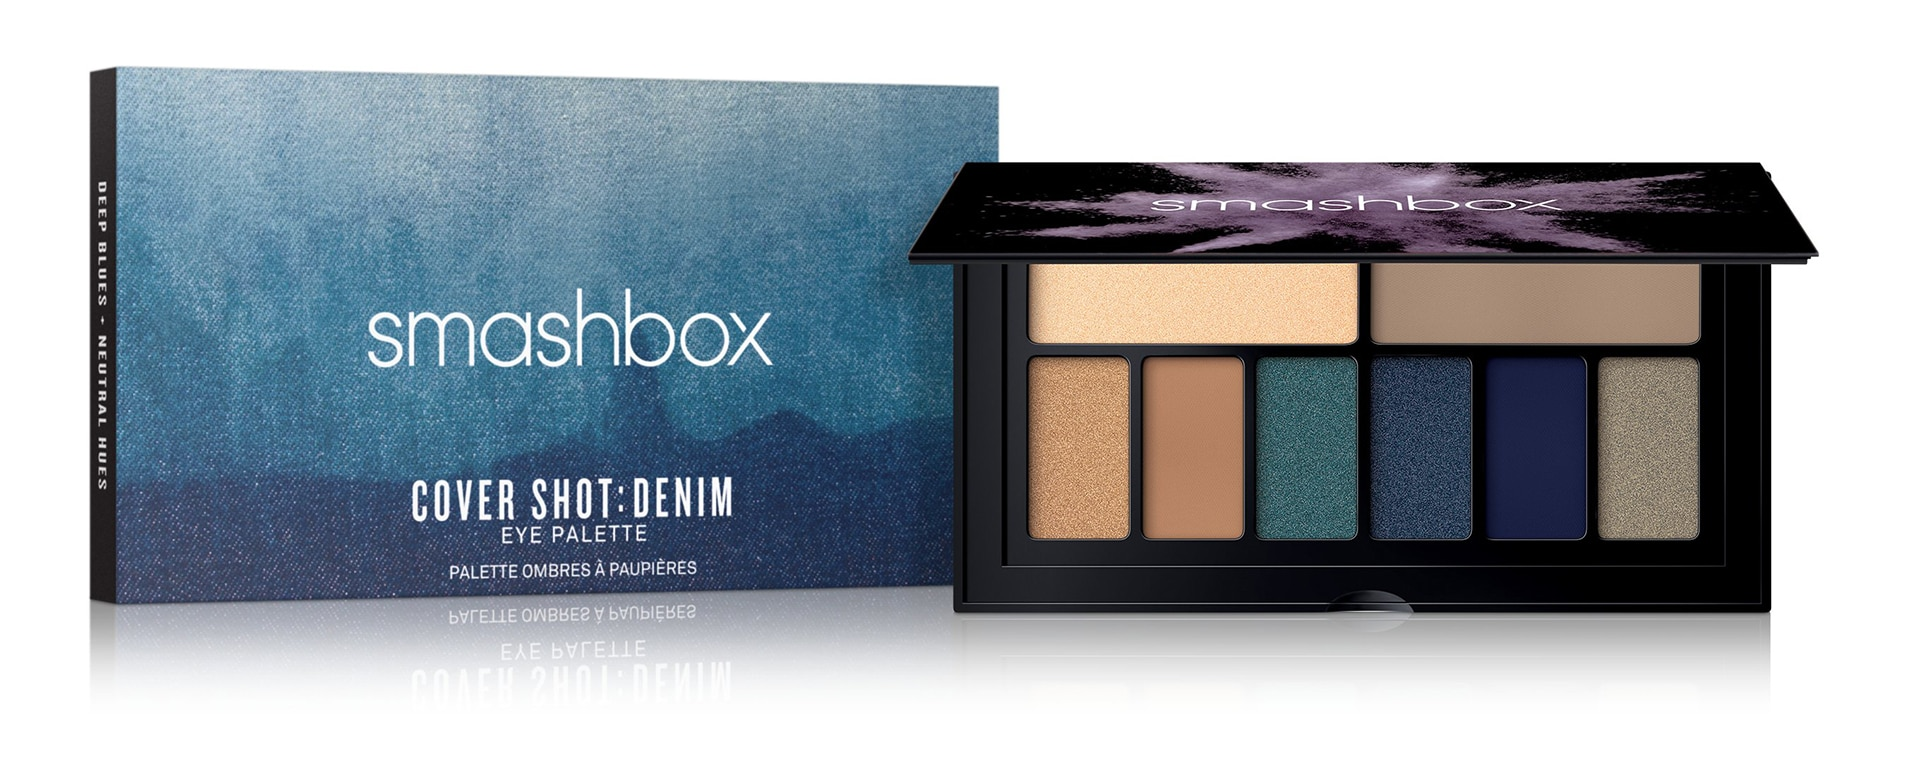 Smashbox Cover Shot Palette Eye Desert e Denim - Info review recensione prezzo dove acquistare swatches colori - About Beauty